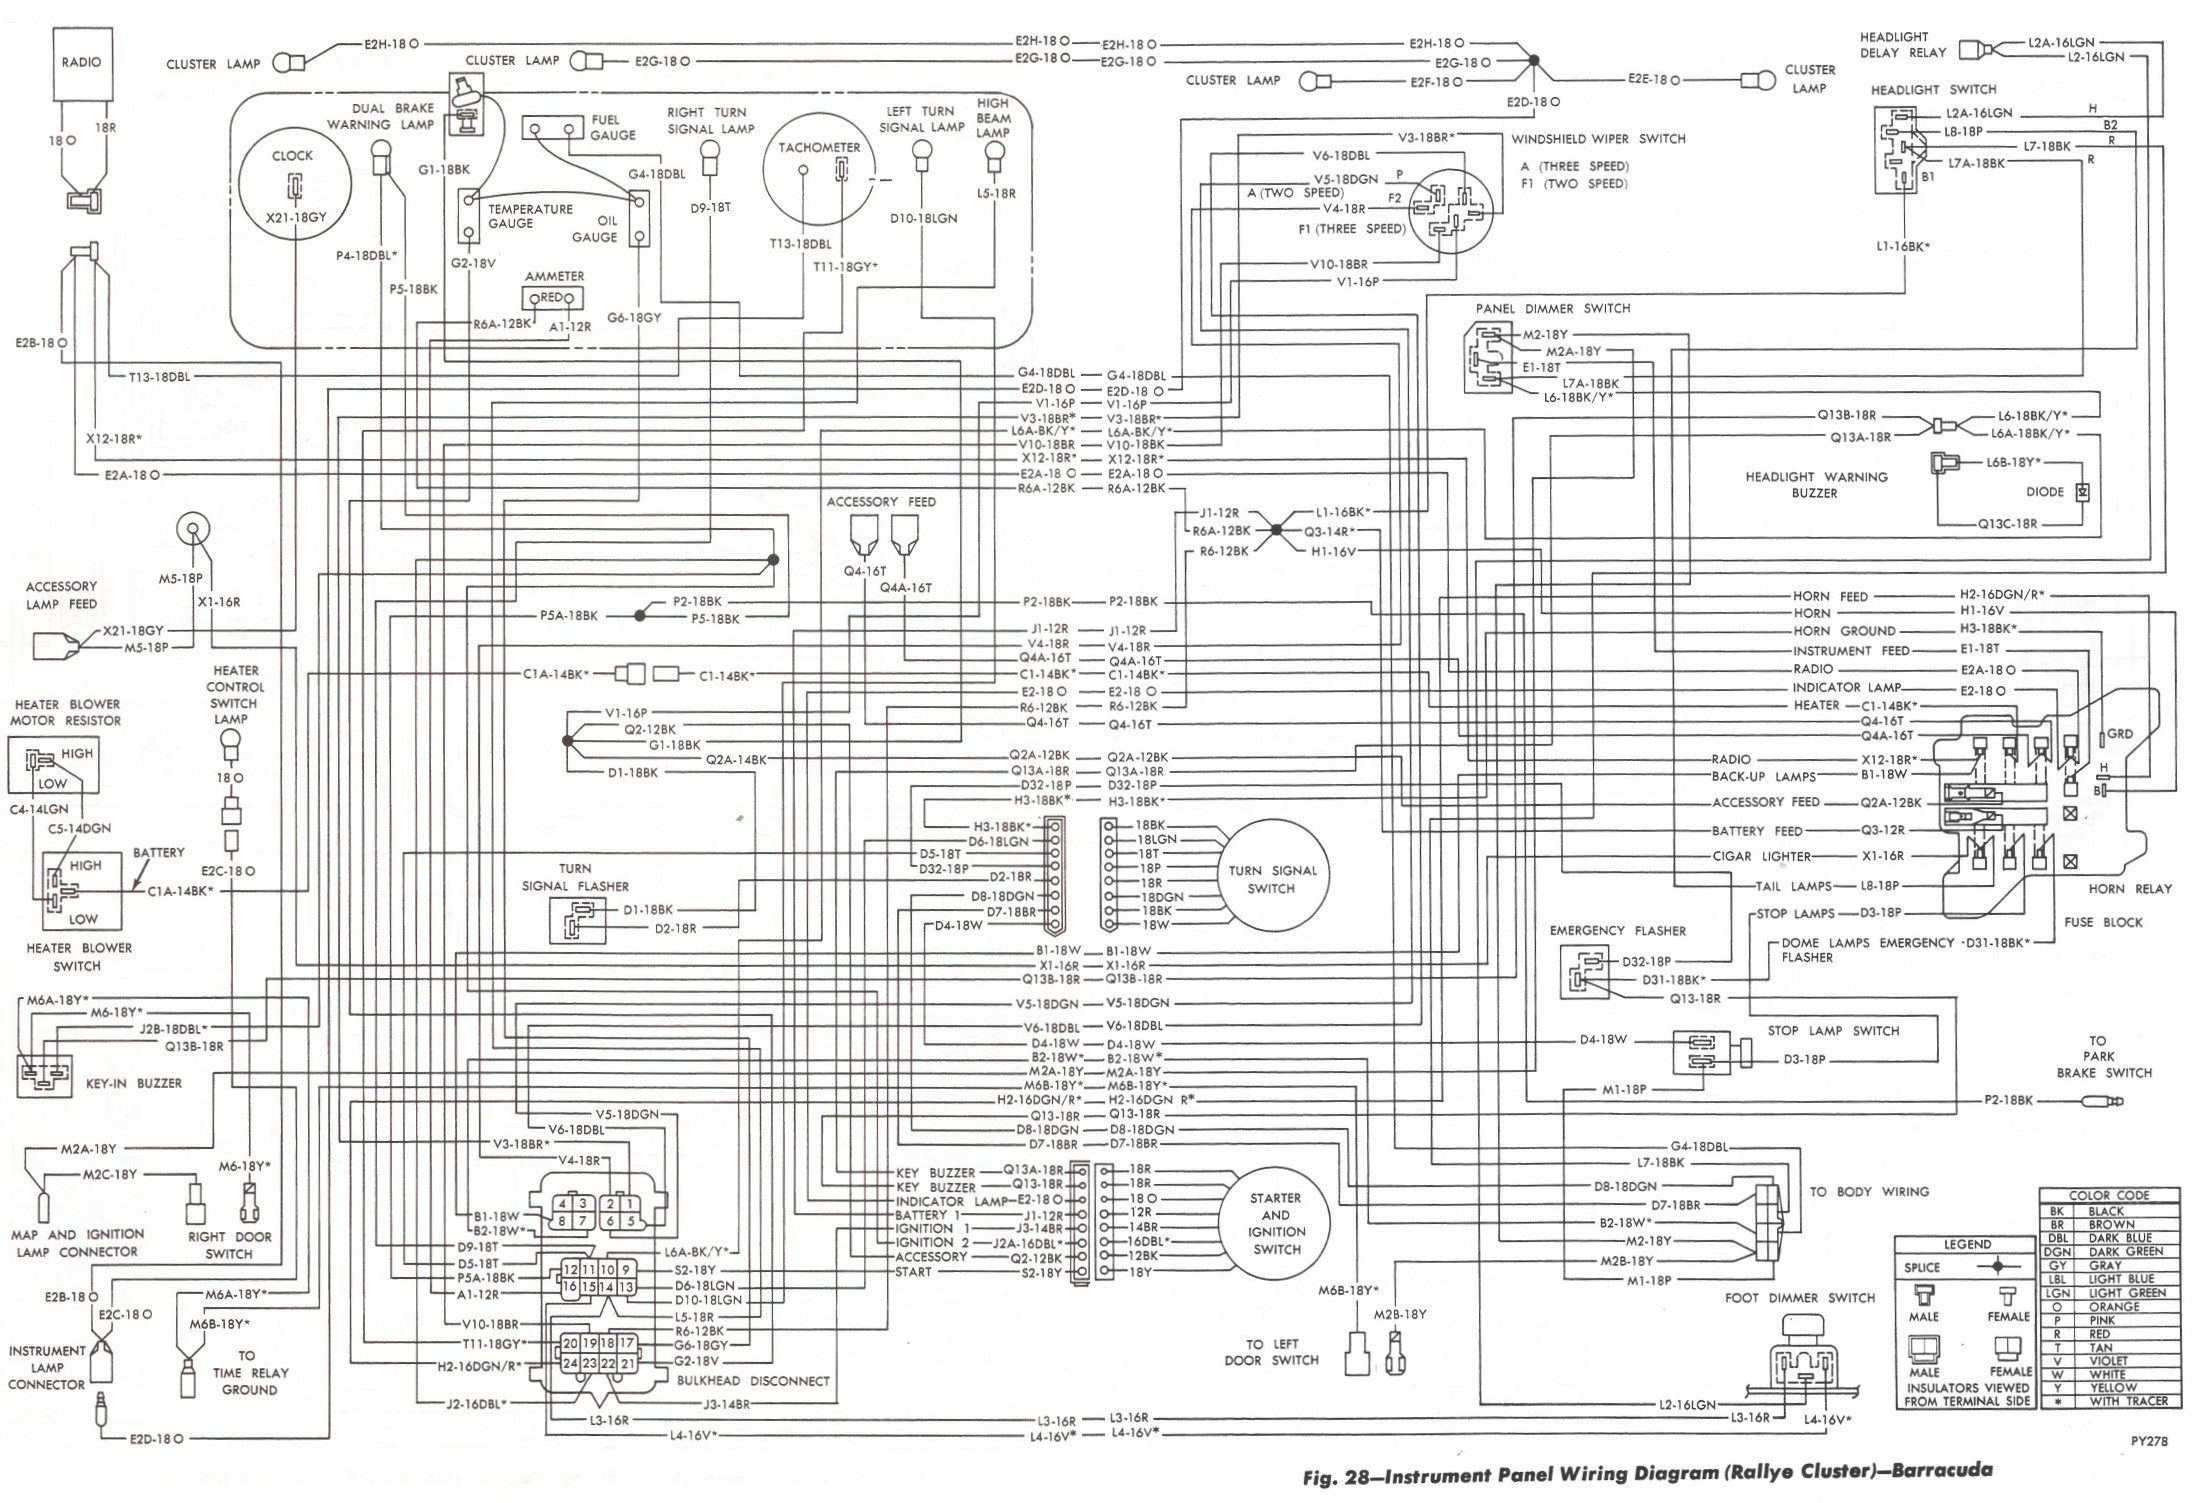 6709072 InstrumentPanelAccessoryWiringDiagram Barracuda2 70 cuda wiring diagram 70 charger wiring diagram \u2022 wiring diagrams wiring diagram for 1968 plymouth roadrunner at reclaimingppi.co